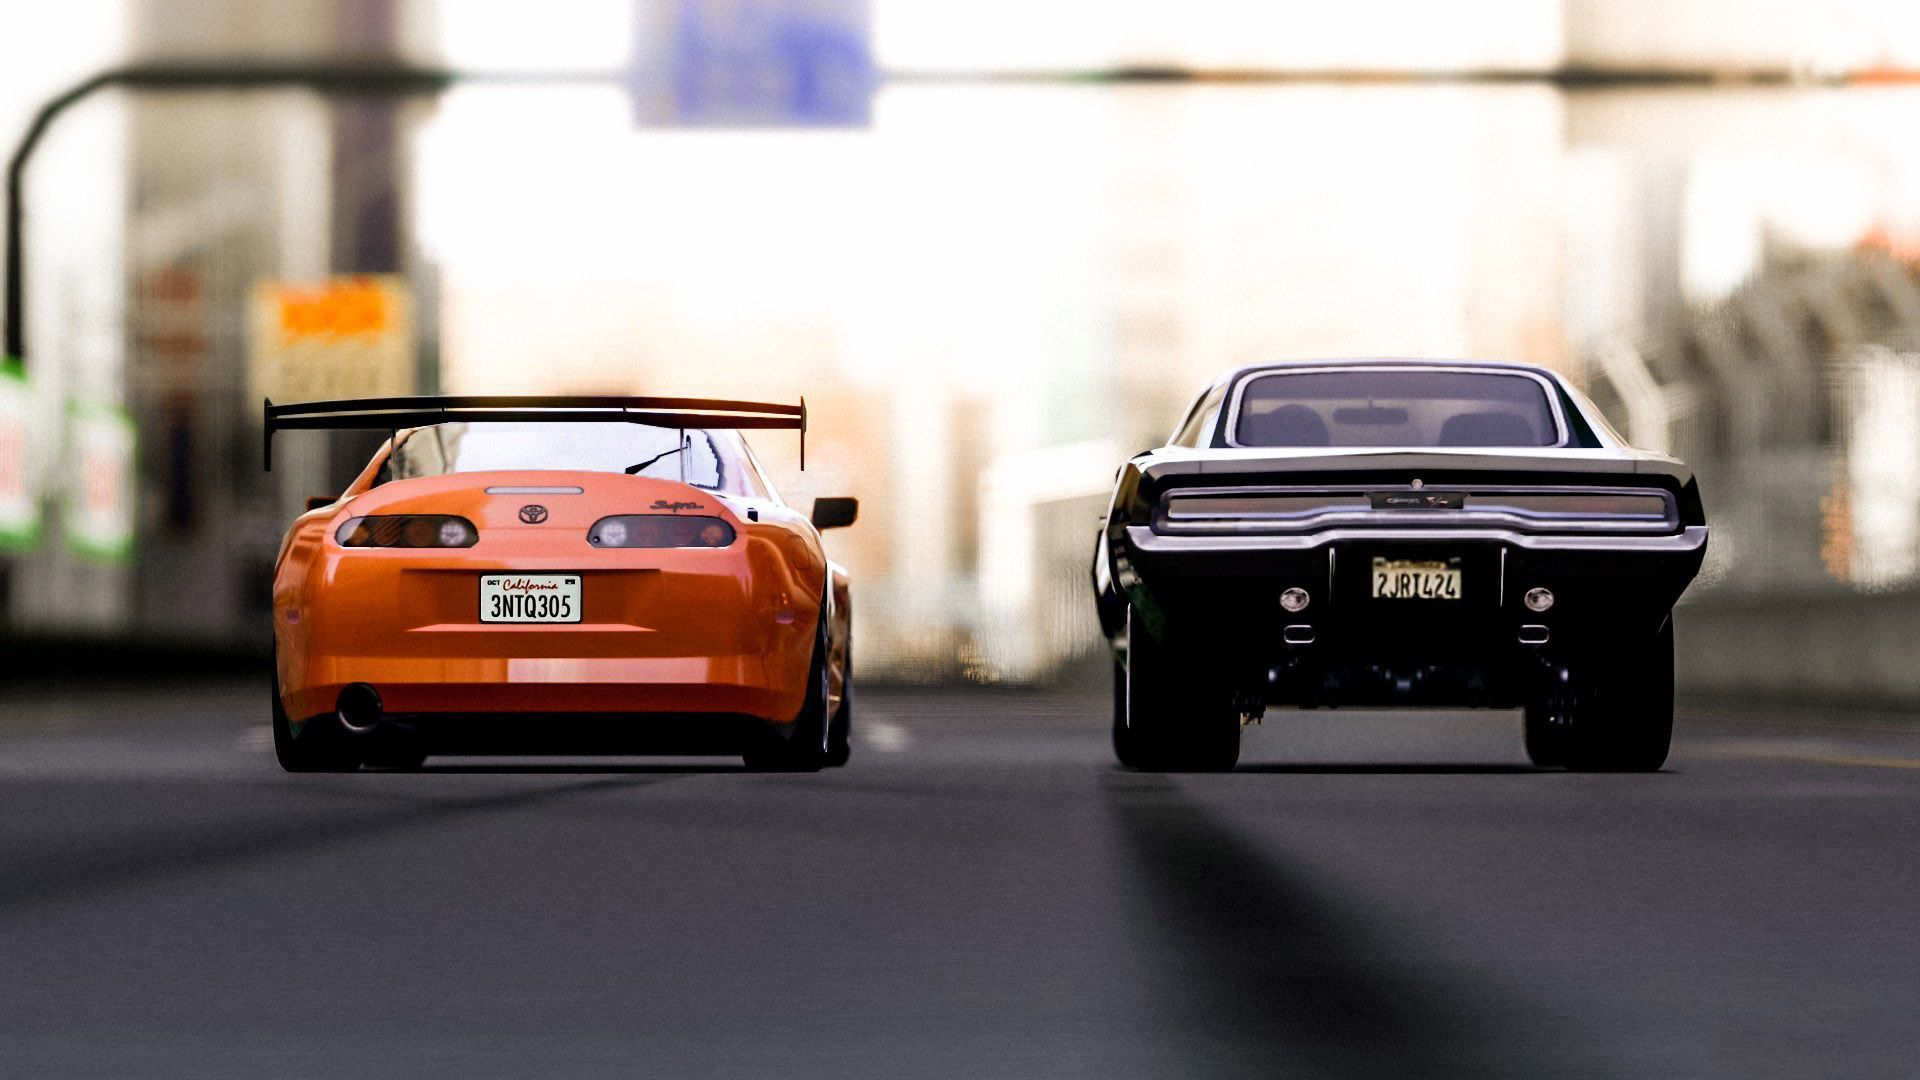 Supra Drift Wallpaper For Iphone FfK Trol, Duvar